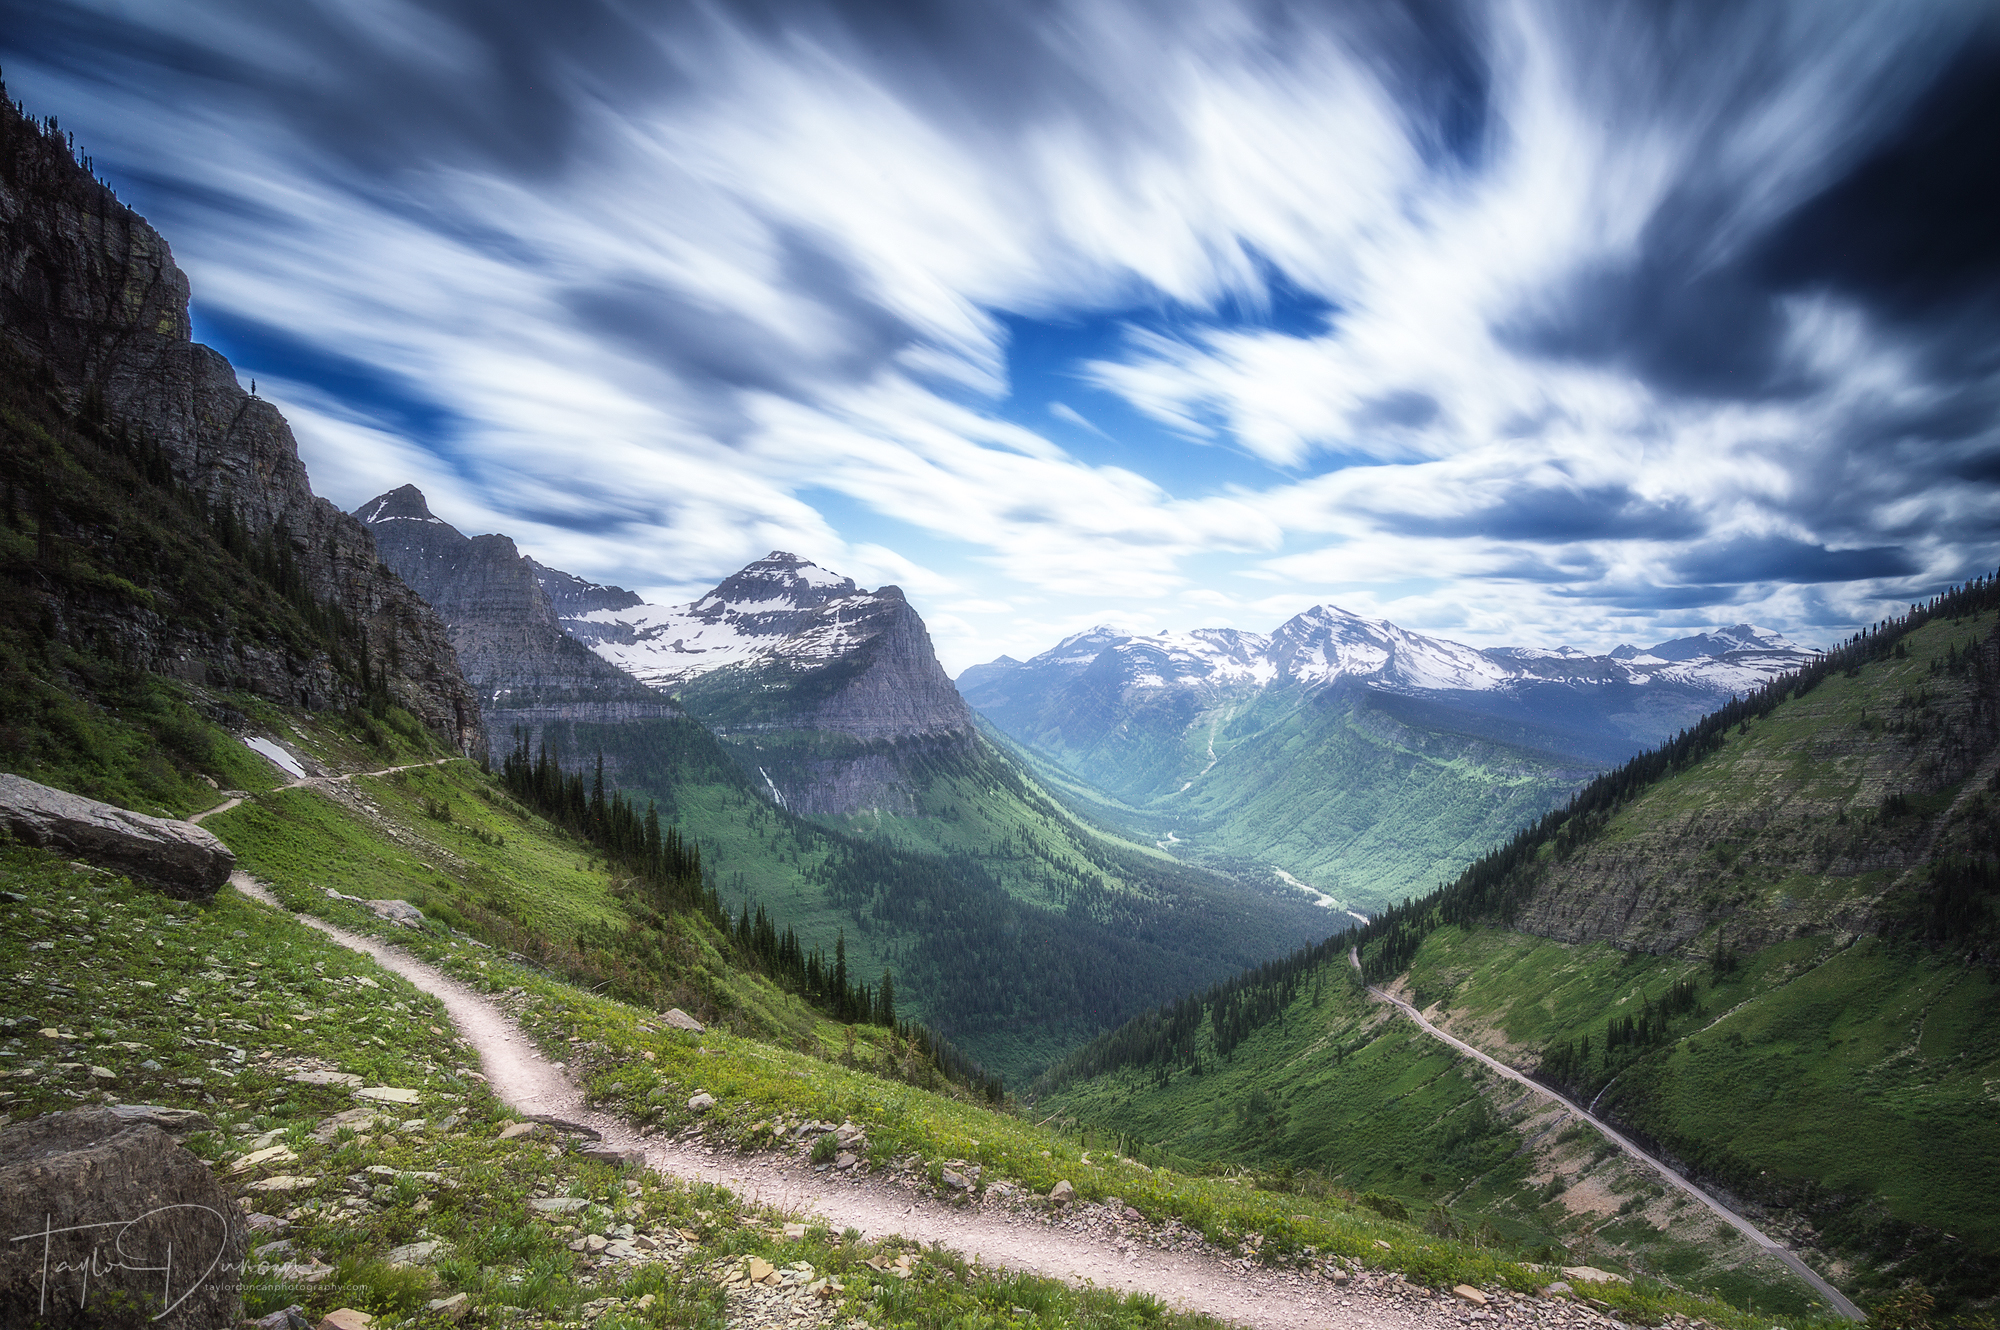 Clouds roll across the sky above the Highline Trail with the Going-to-the-Sun Road below